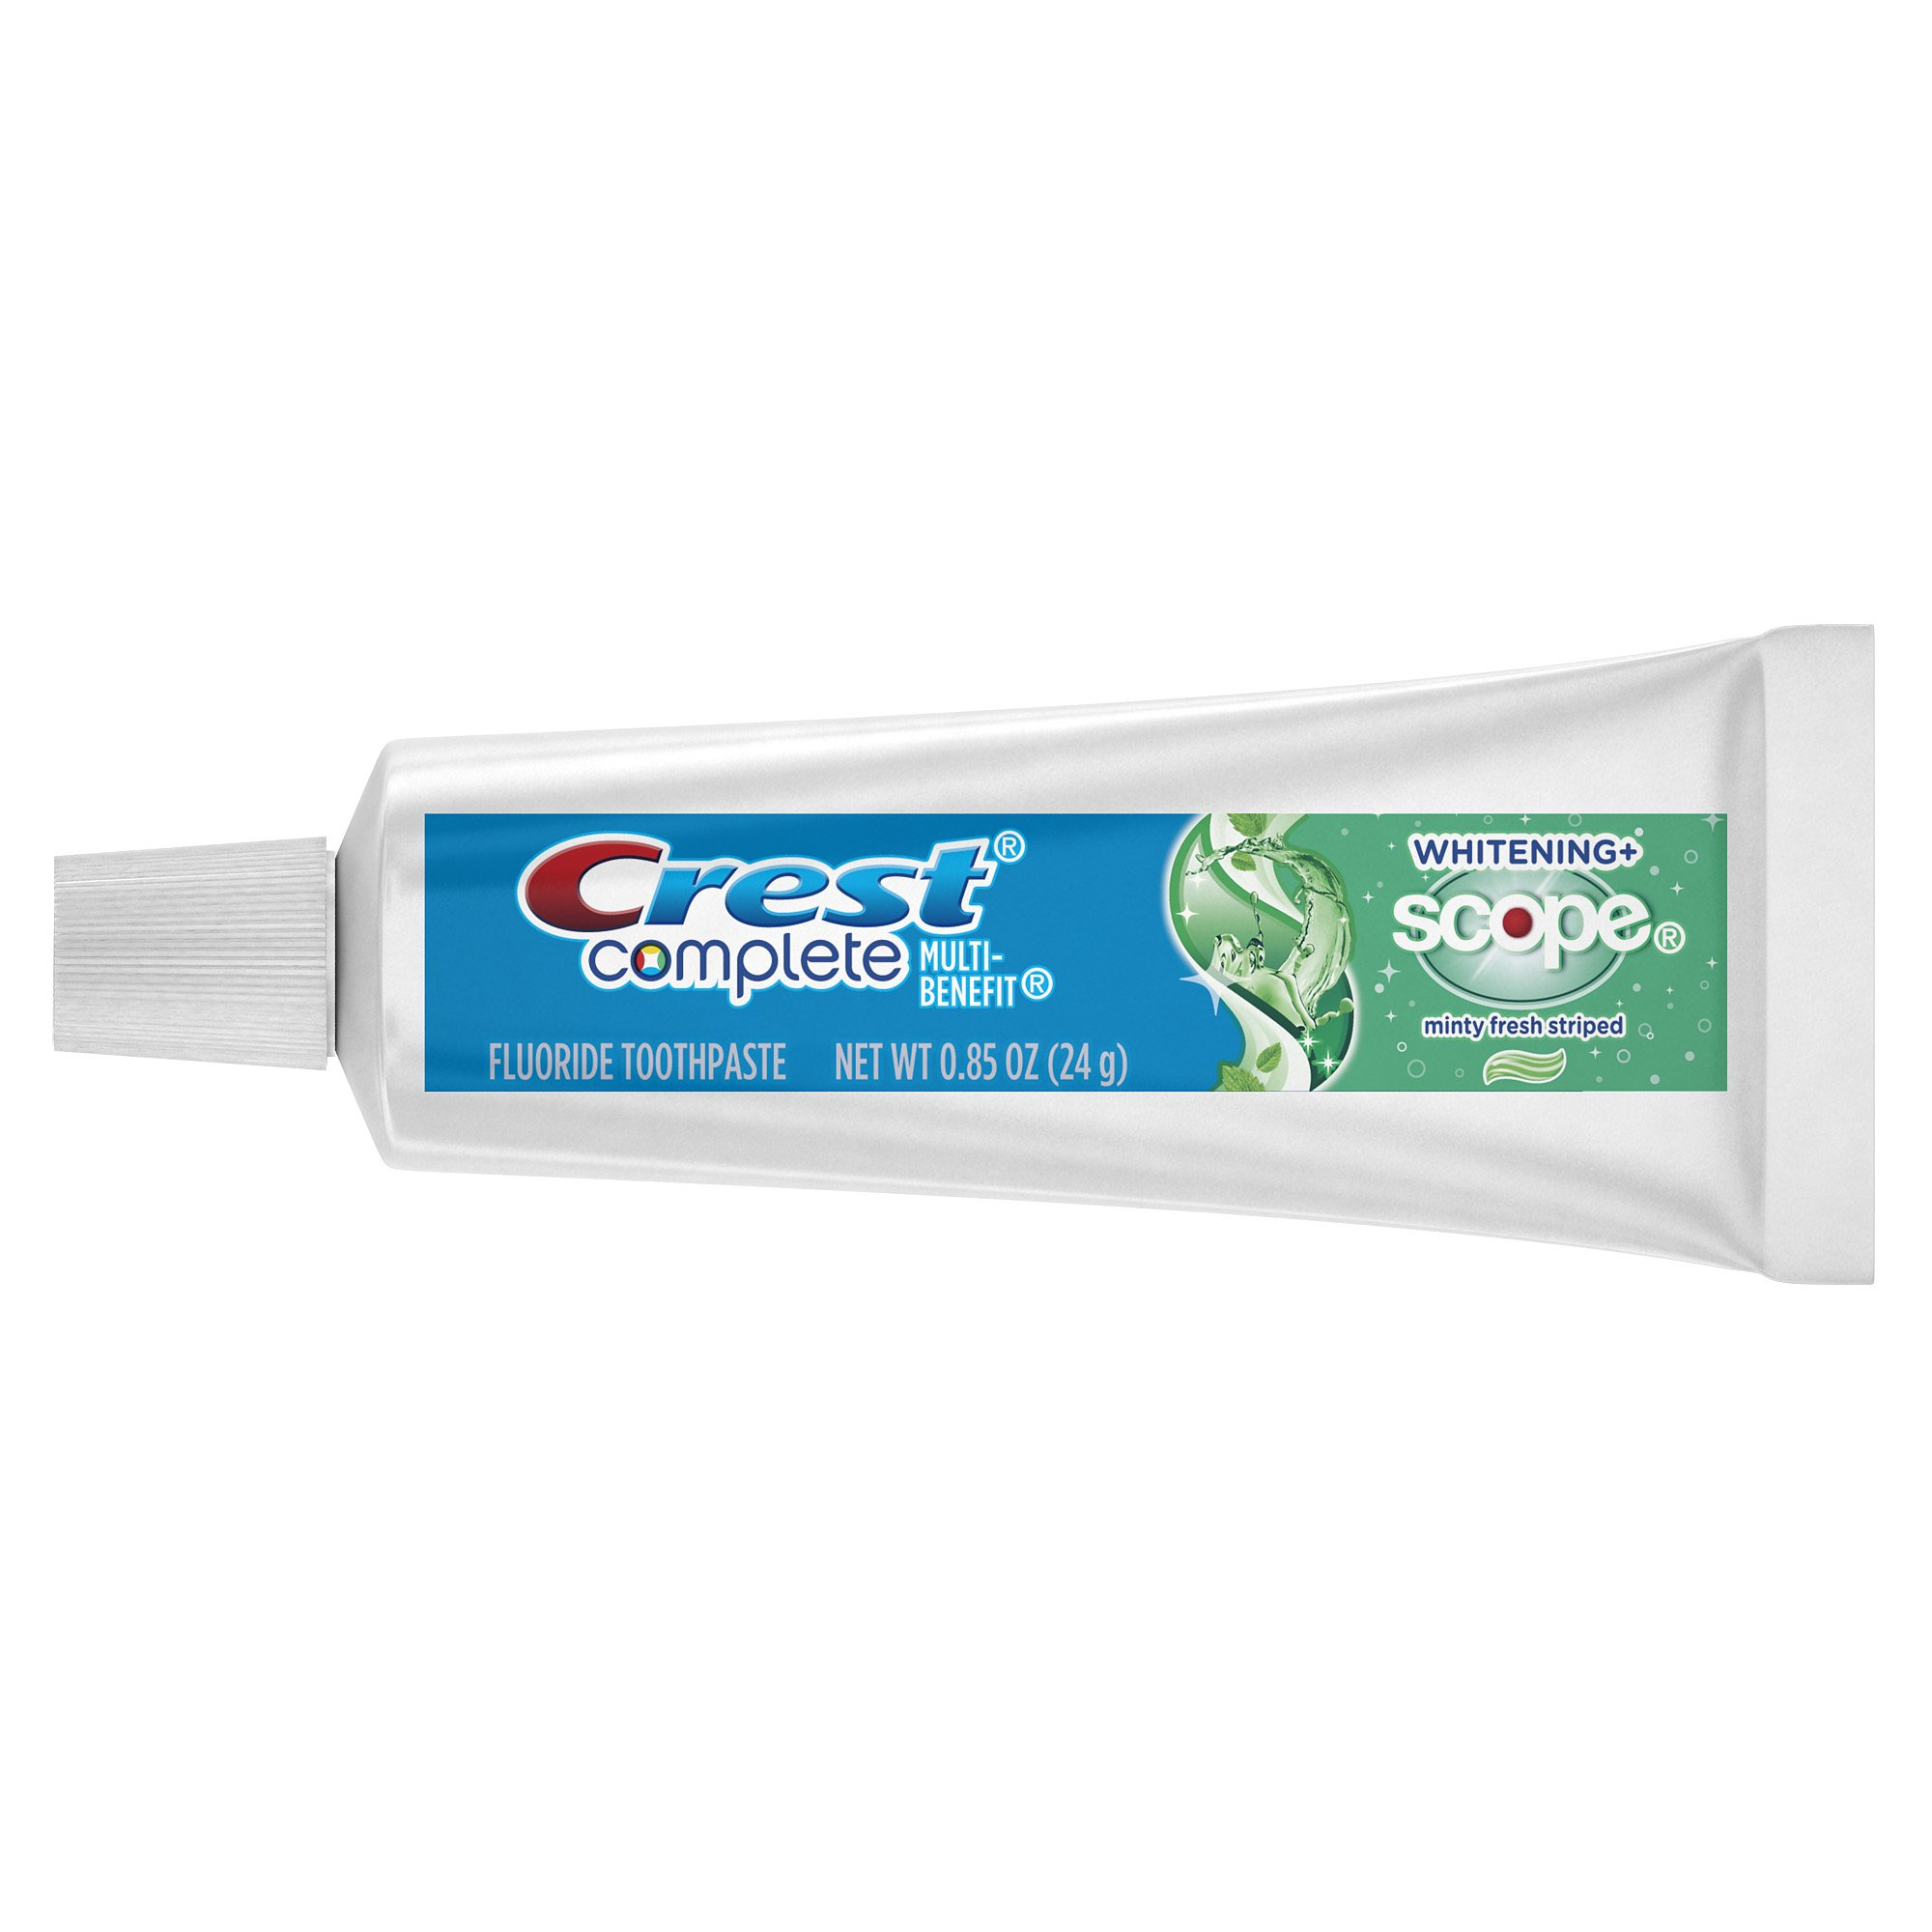 Crest Complete Whitening Plus Scope Minty Fresh Toothpaste, .85 Ounce